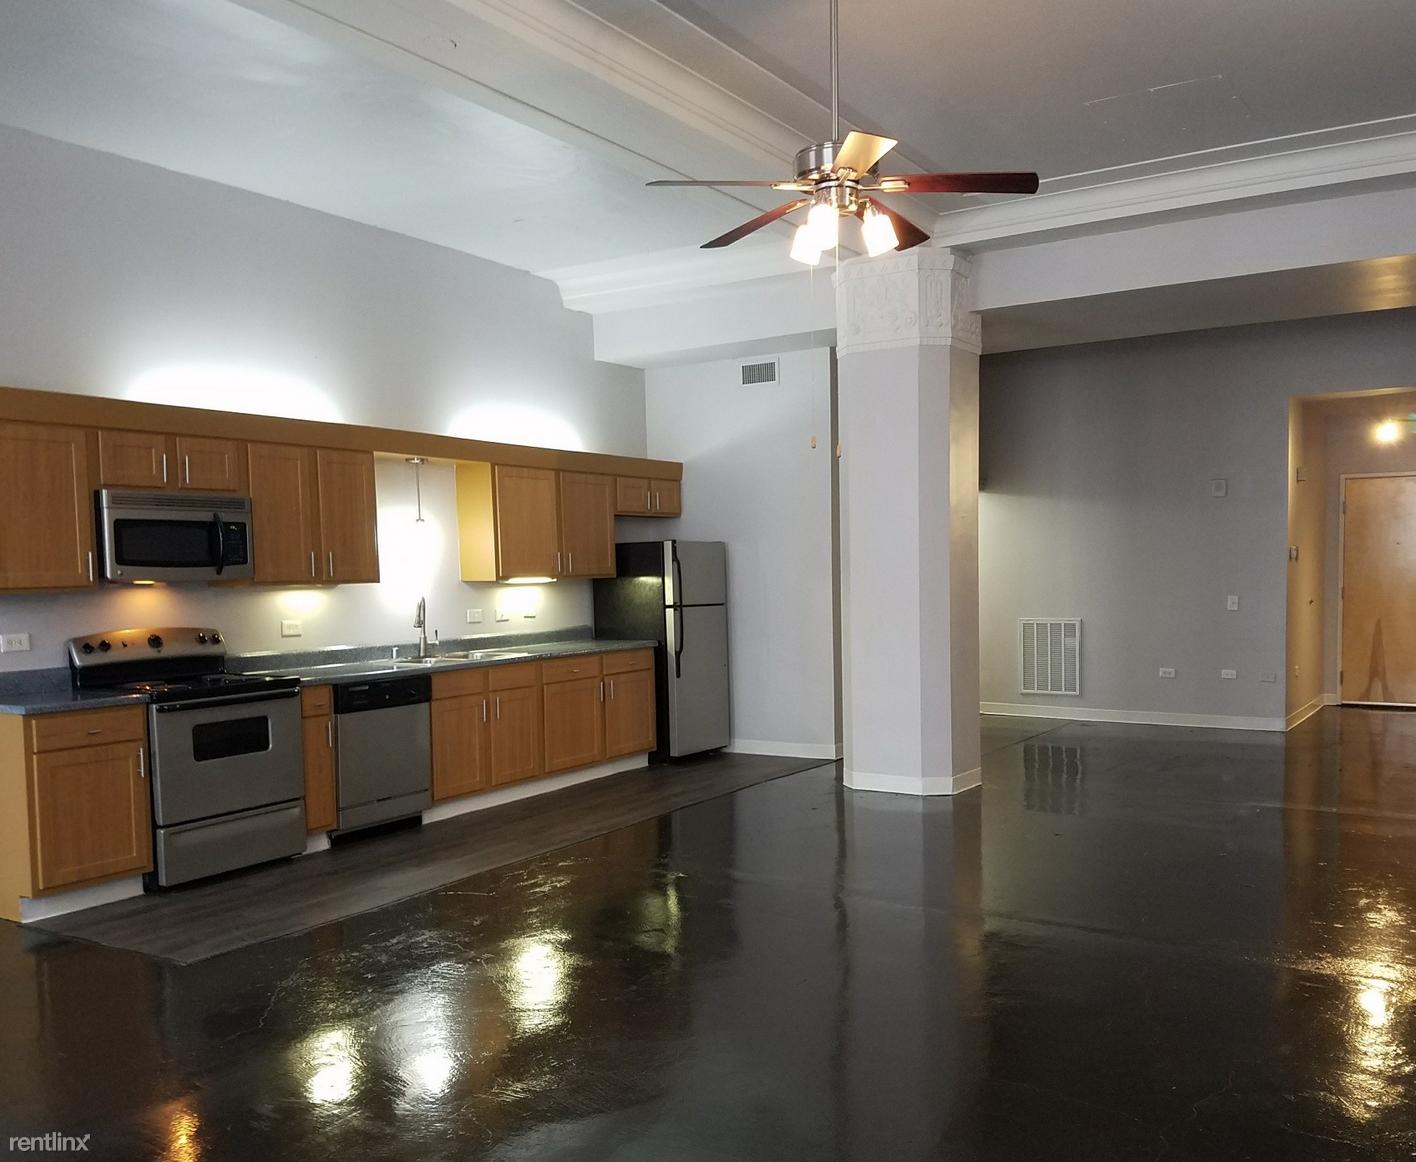 Available units Apartments photo #1